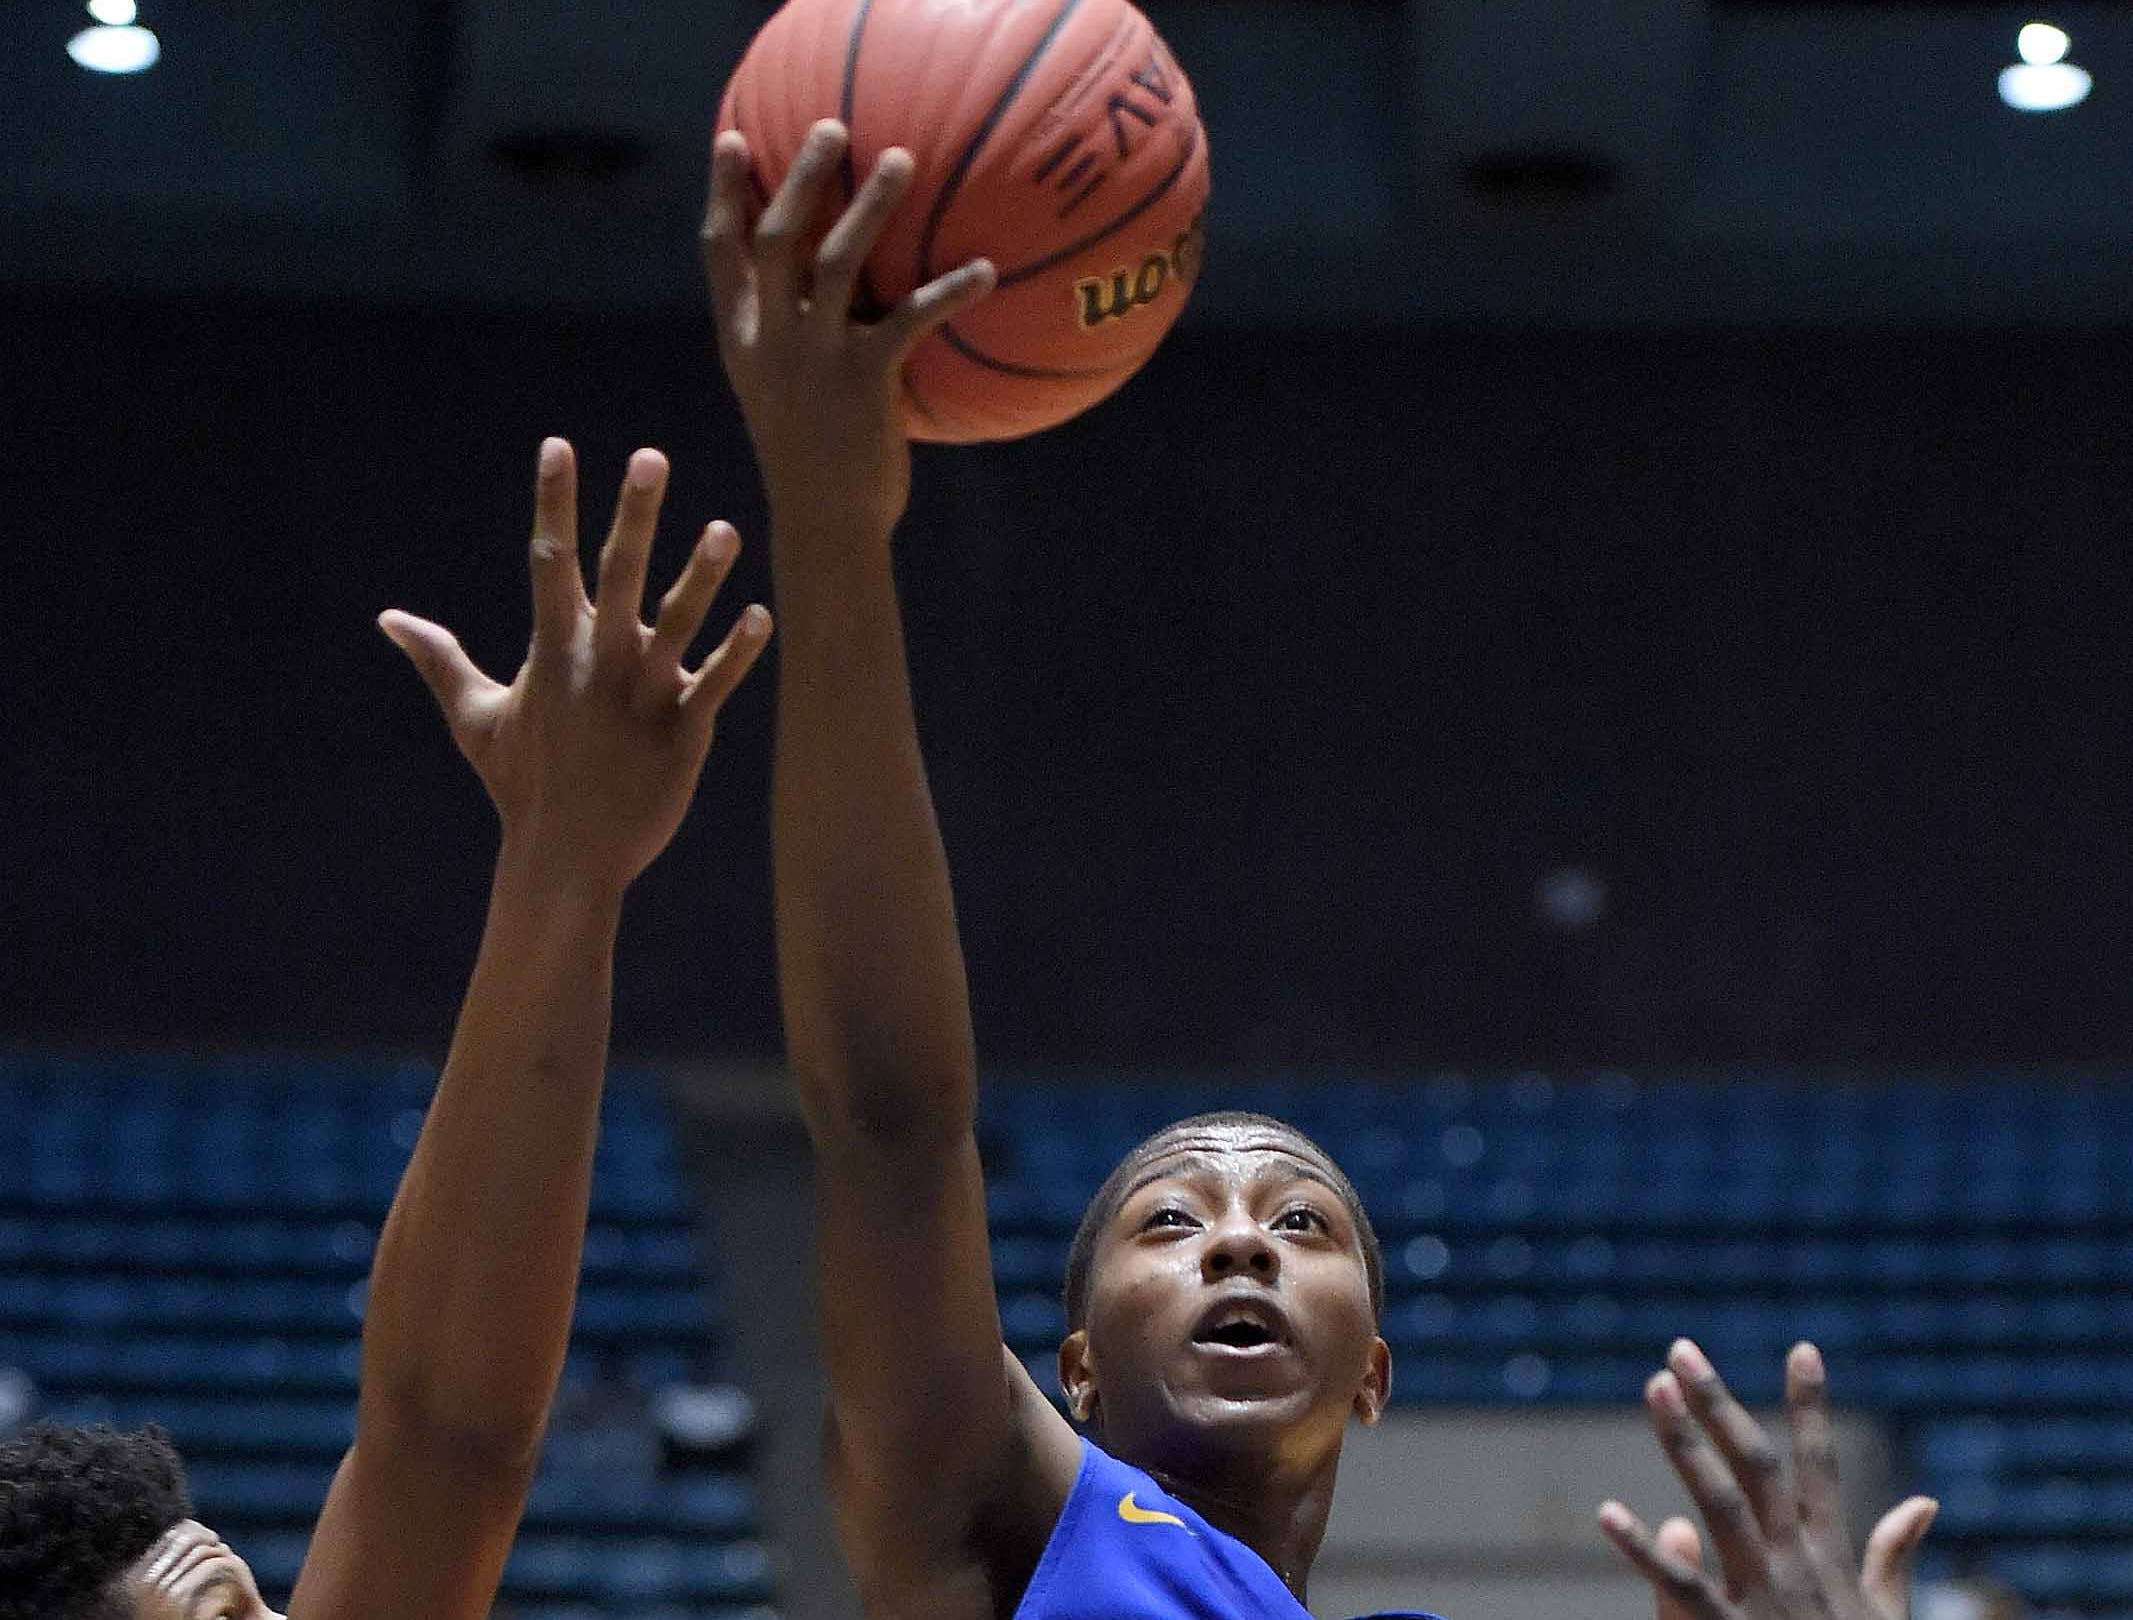 Velma Jackson's Levaeon Griffin (3) drives the lane against Holly Springs in the finals of the MHSAA C Spire State Basketball Championships at the Mississippi Coliseum in Jackson, Miss., on Saturday, March 9, 2019.